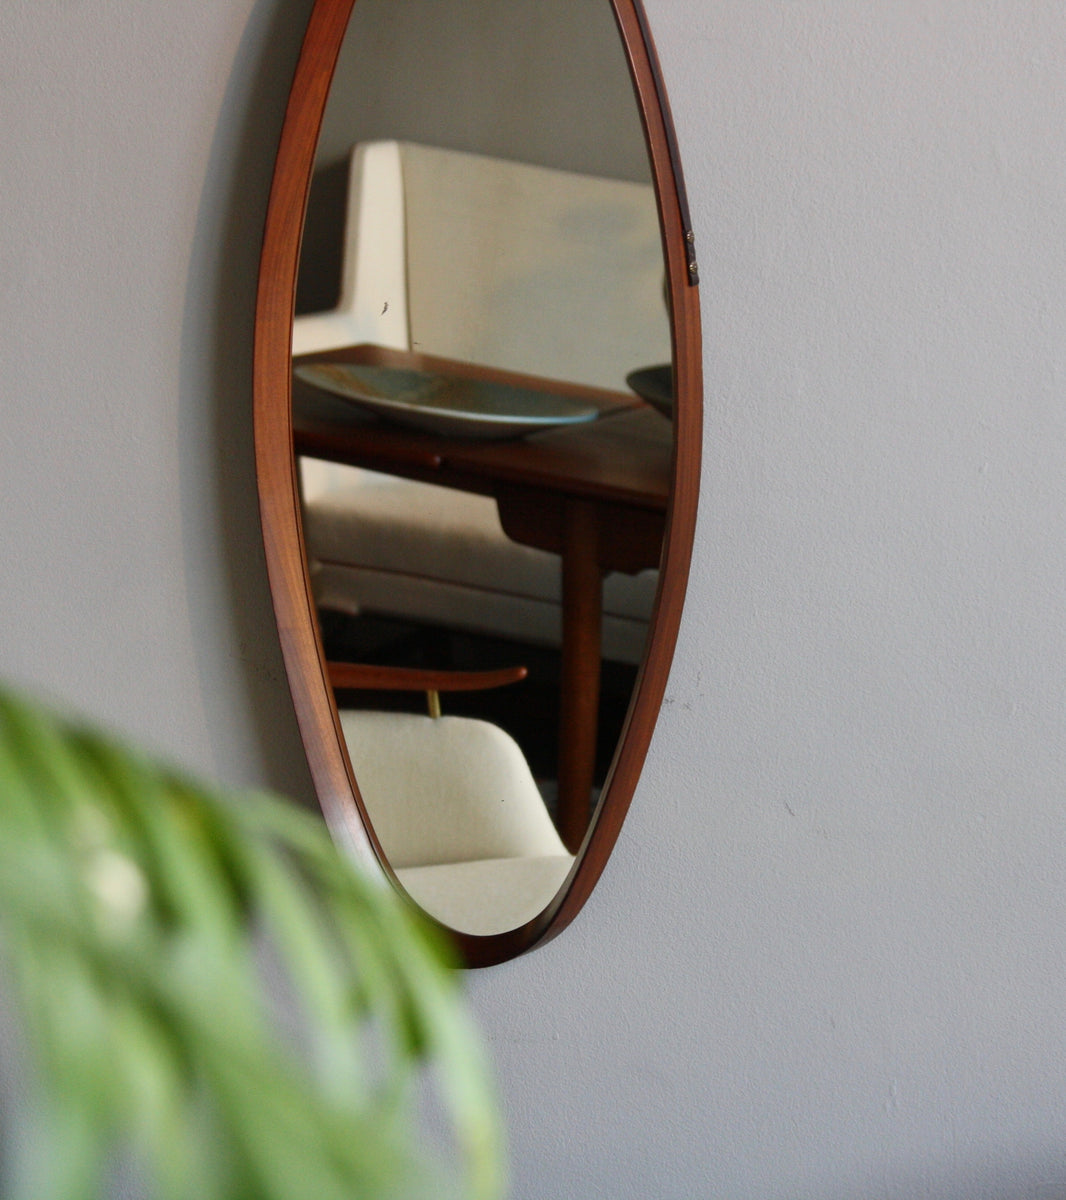 Vintage Teak Oval Mirror with Leather Strap Denmark C. 1950